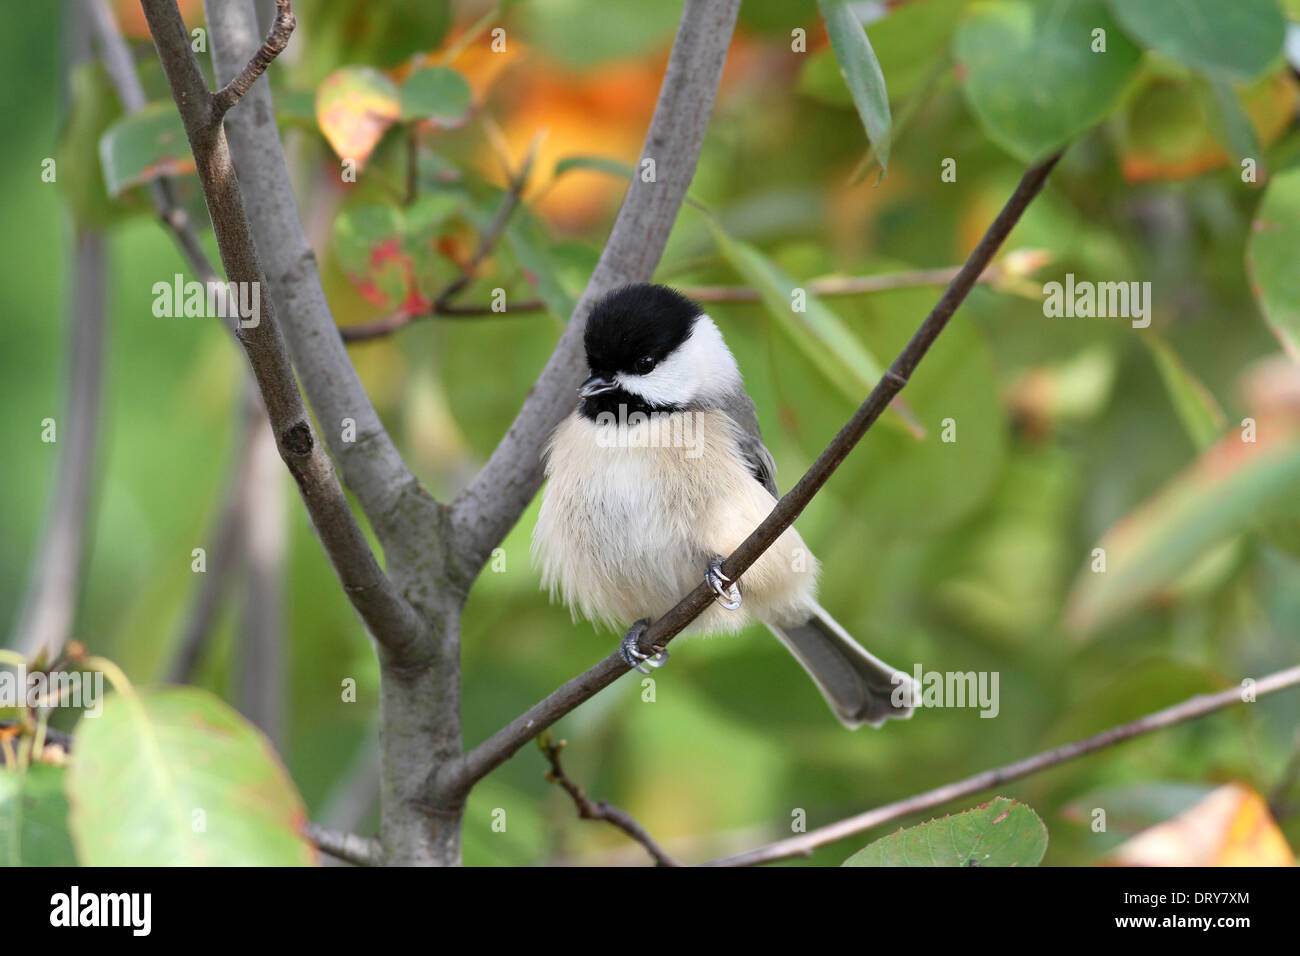 Carolina Chickadee on Perch - Stock Image